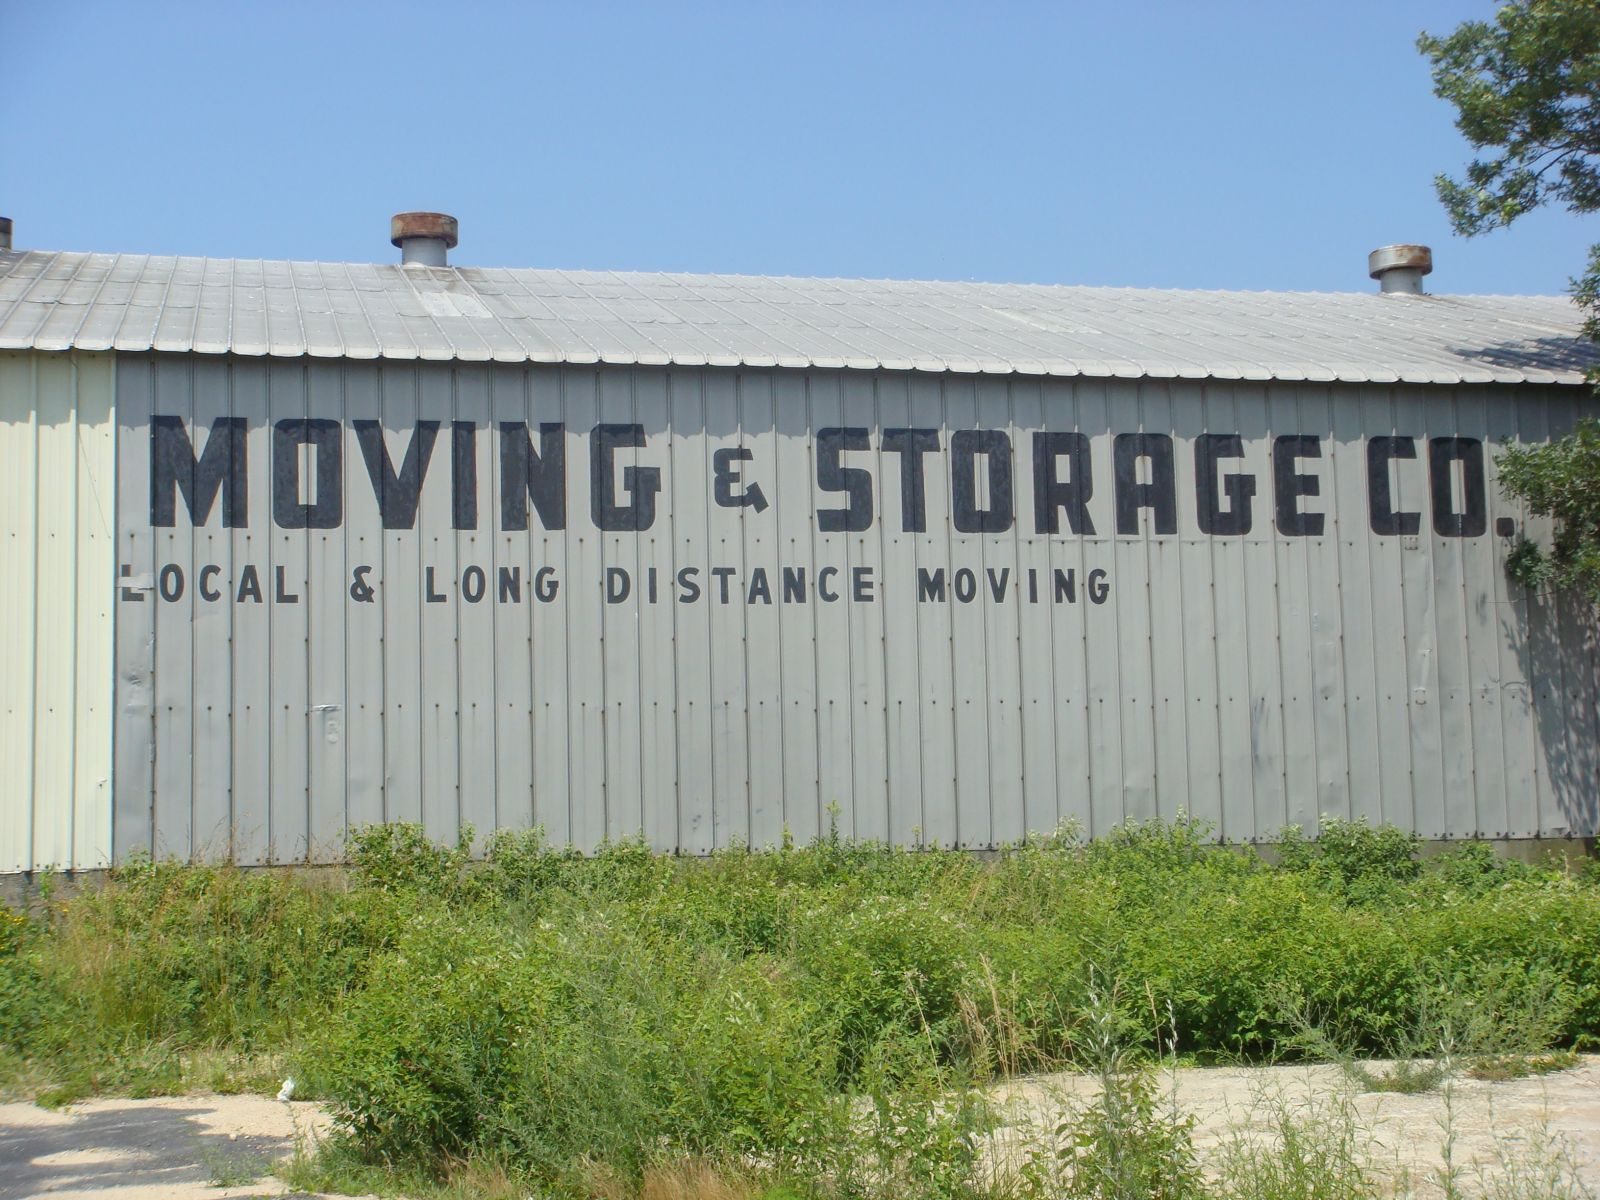 Moving & Storage Co. | Bearses Way, Hyannis | Nick Sherman | Flickr